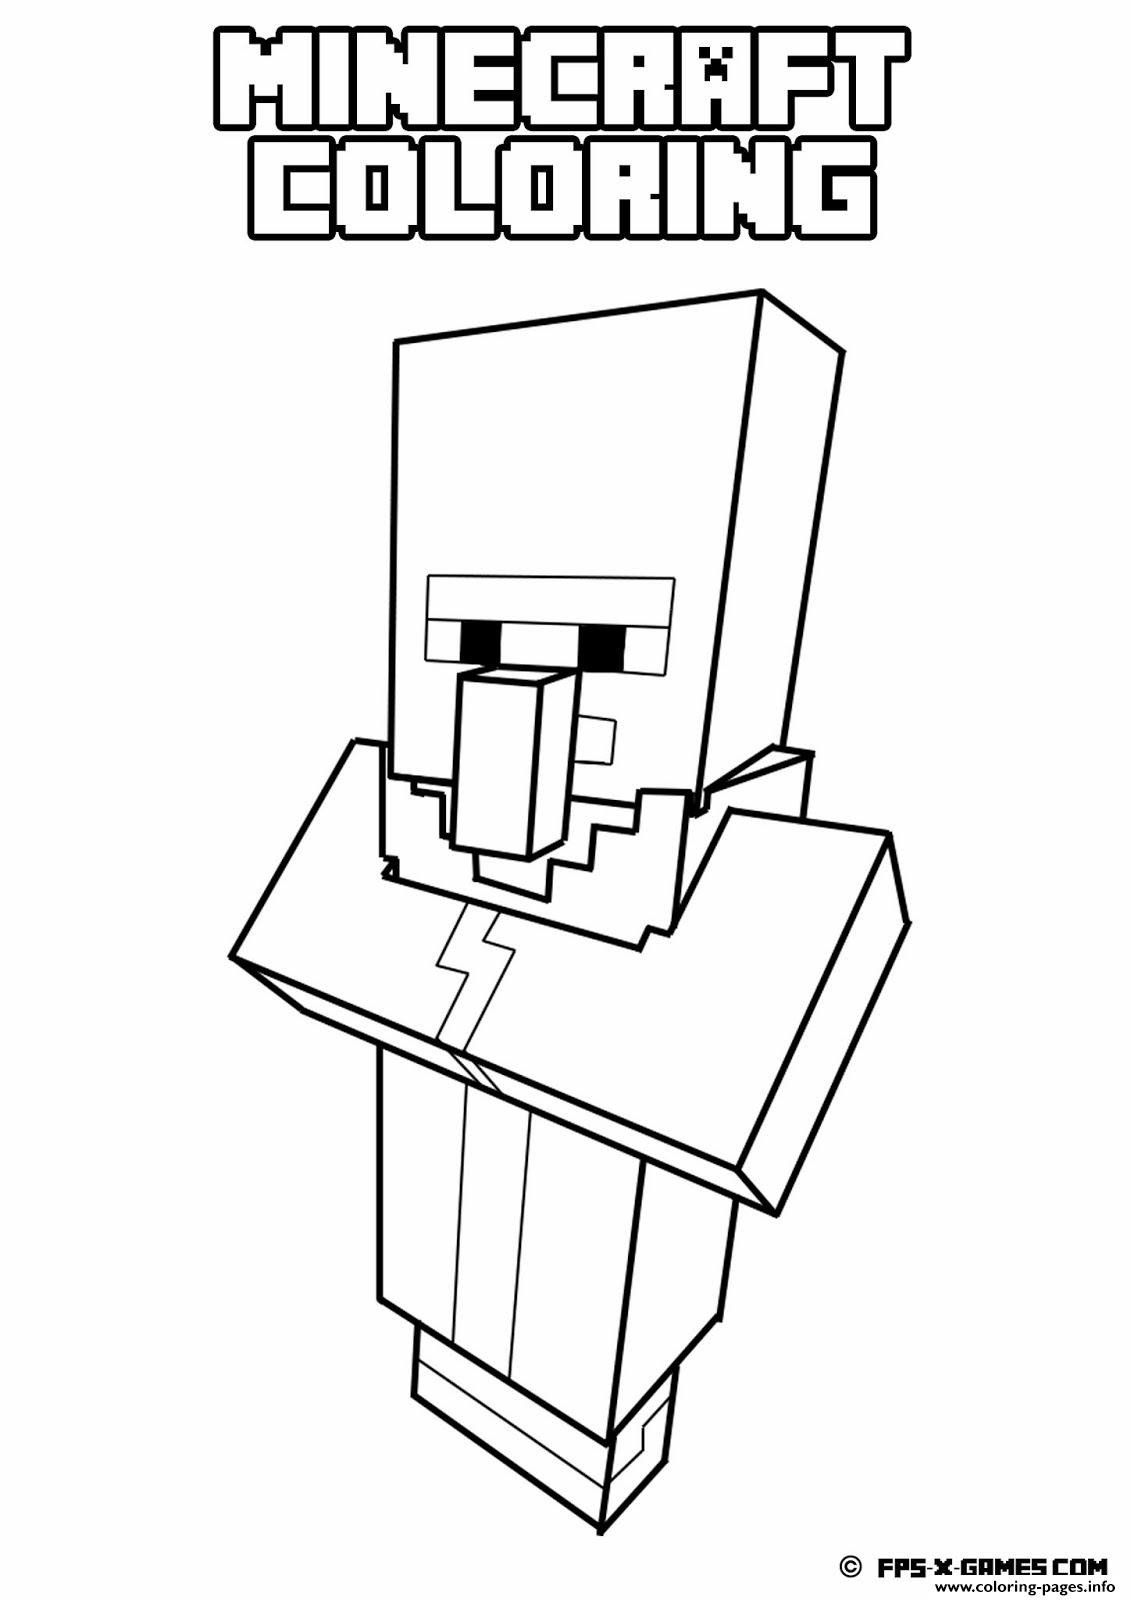 Minecraft Coloring Pages For Kids Cute Minecraft Coloring Pages In 2020 Minecraft Coloring Pages Minecraft Printables Minecraft Drawings